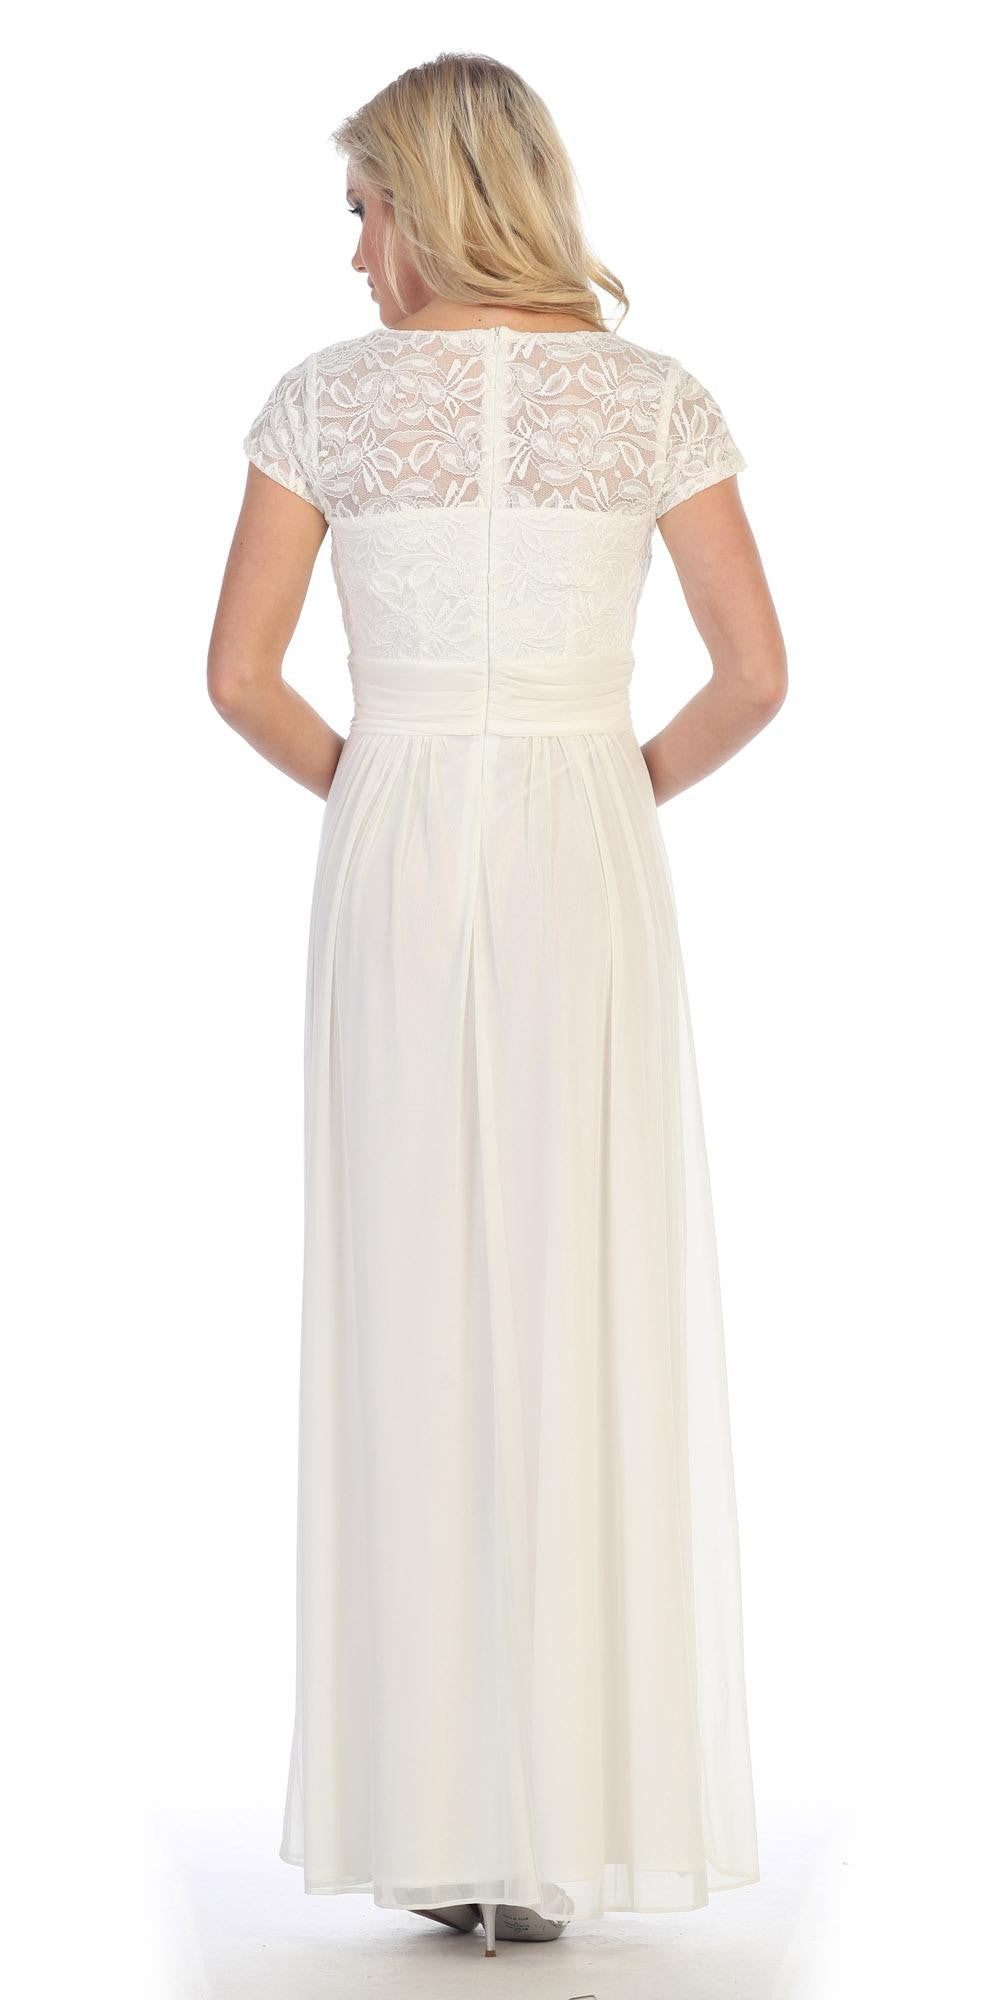 Lace Illusion Bodice Short Sleeves Long Formal Dress Ivory Back